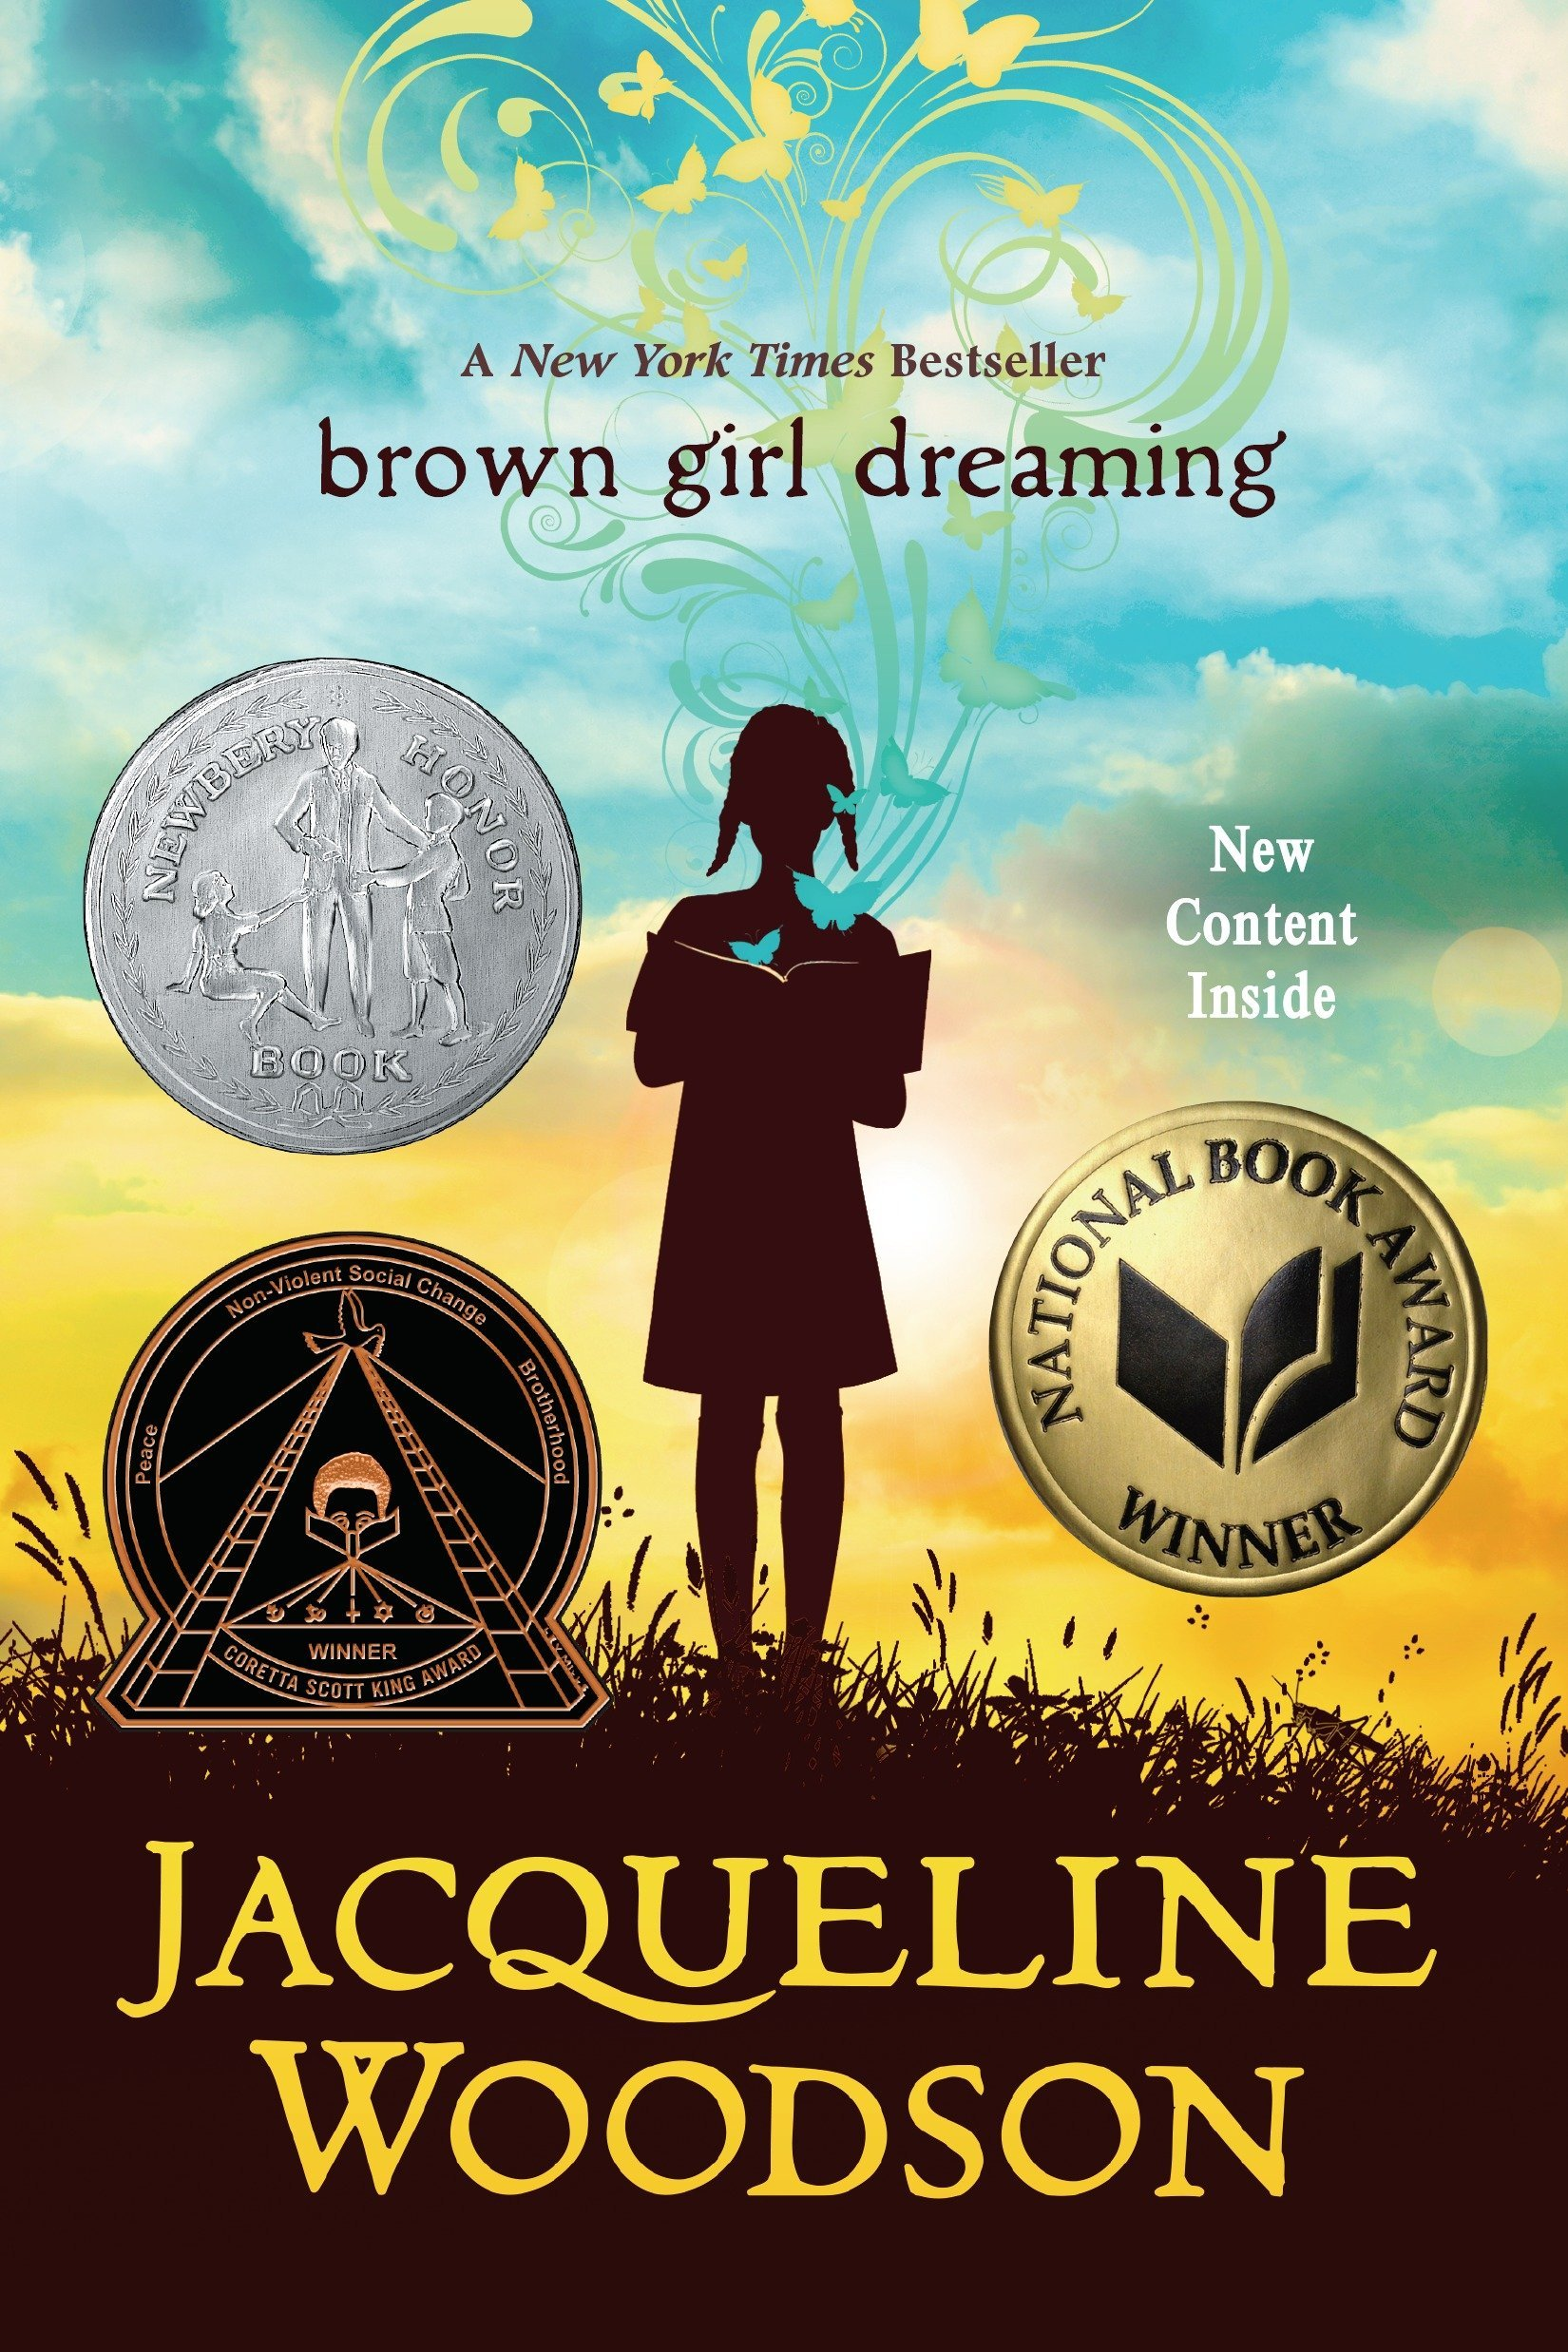 Book cover with a silhouette of a girl reading in the center of the book